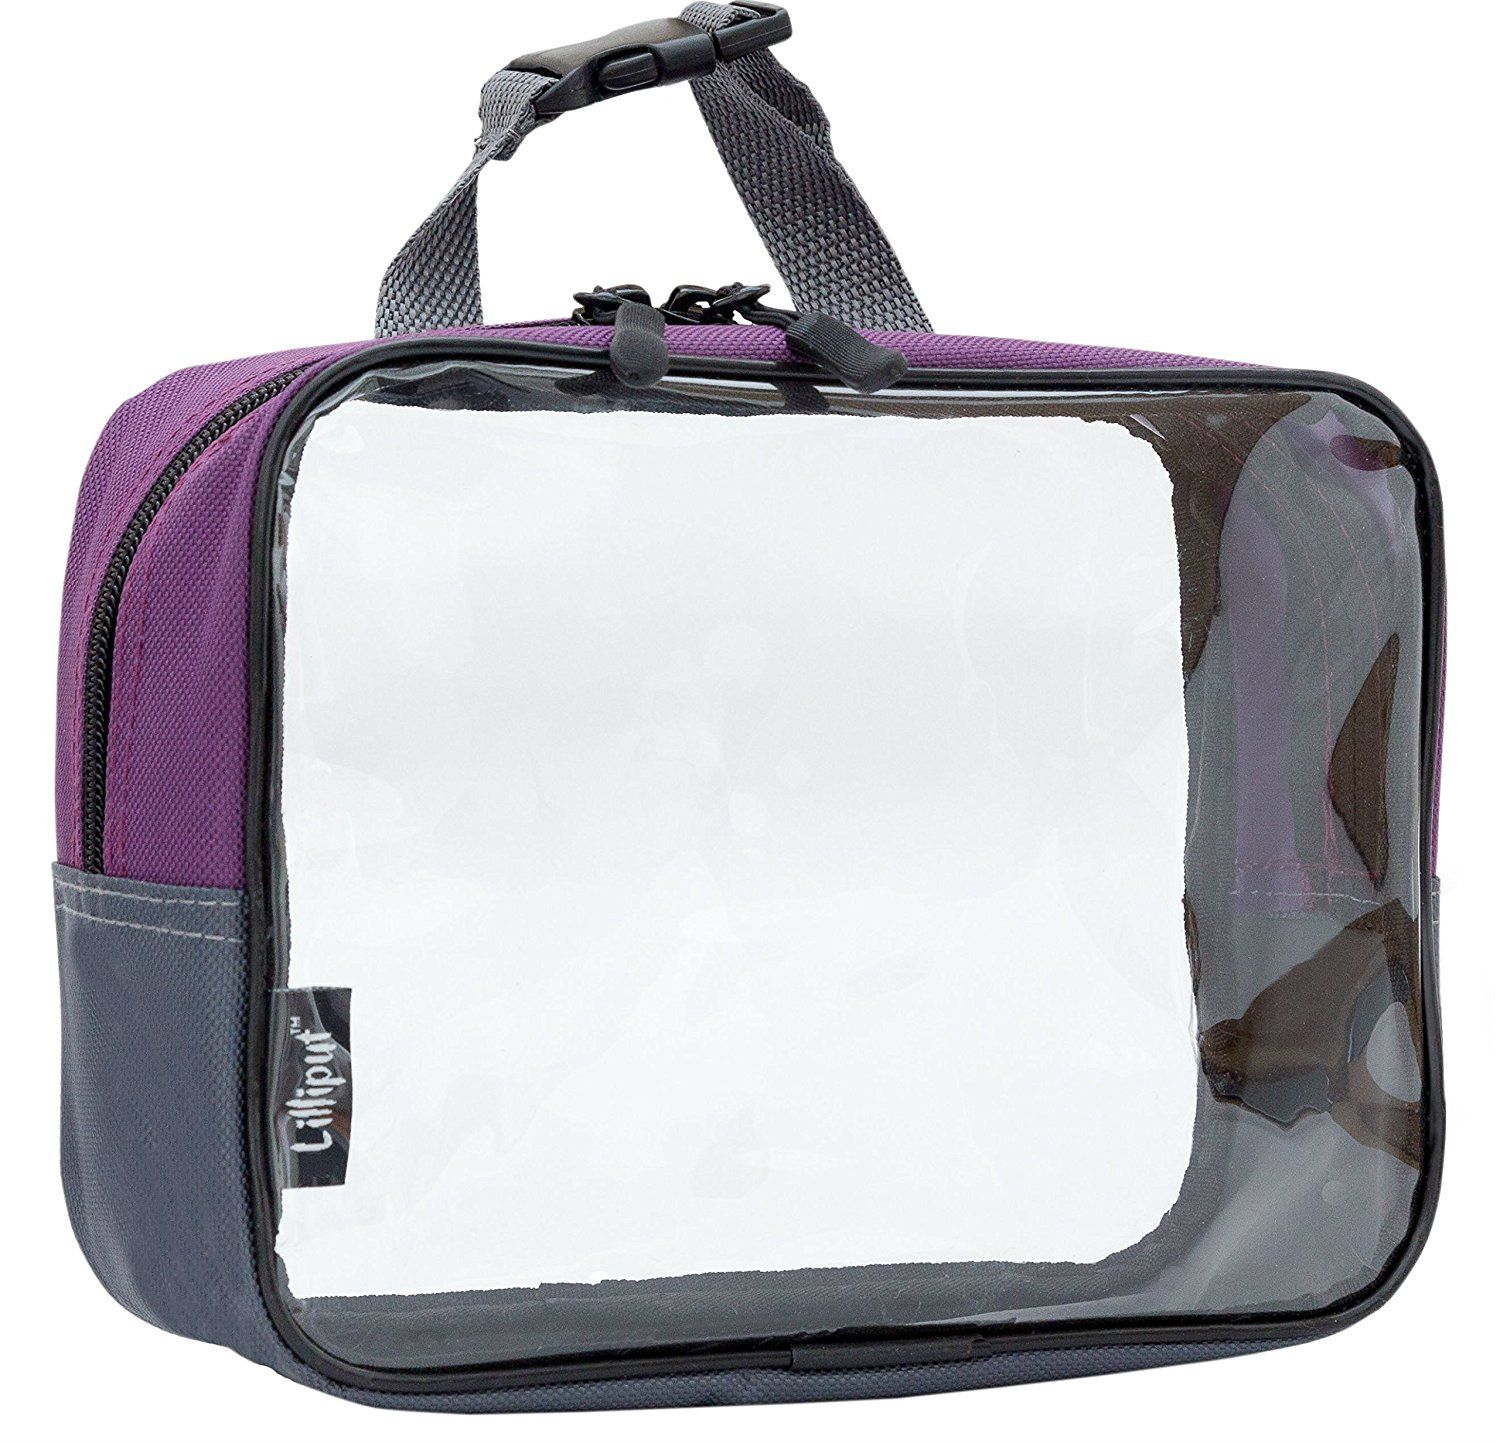 8X6X3 Lilliput Clear Travel Toiletry Bag, Carry On Cosmetic Bag,